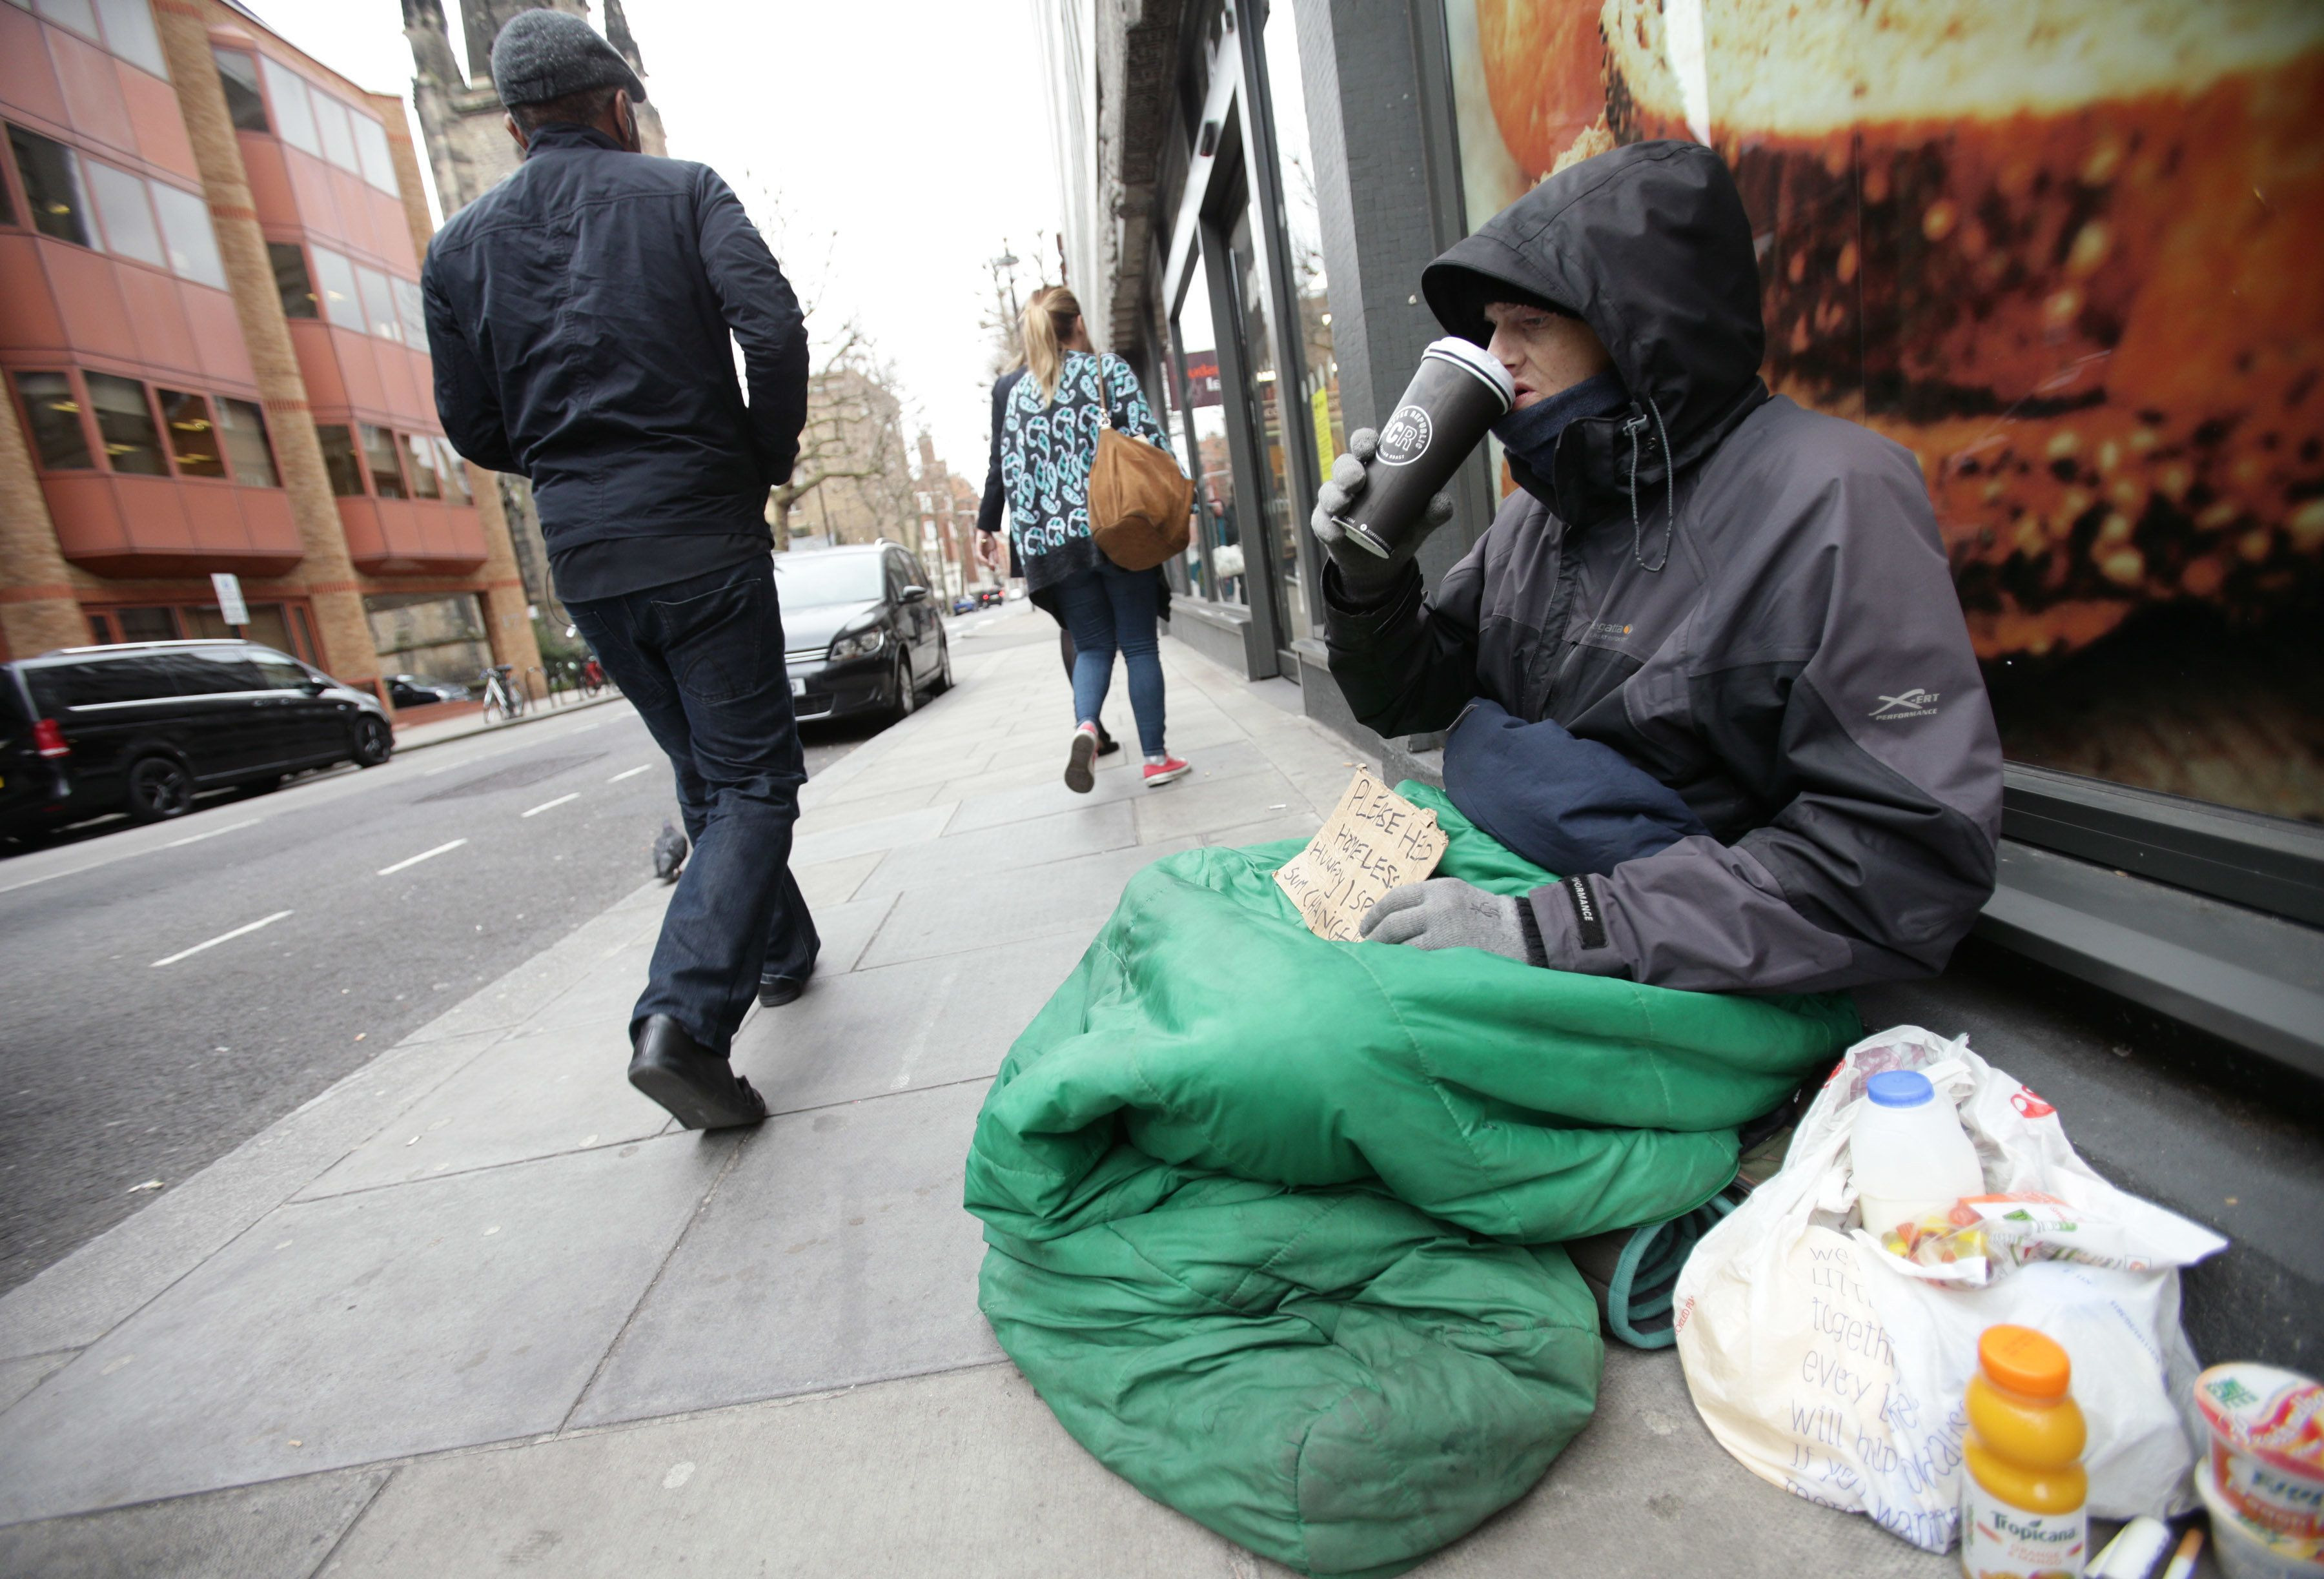 1.25 million people living in the UK were classed as being destitute last year, according to a new